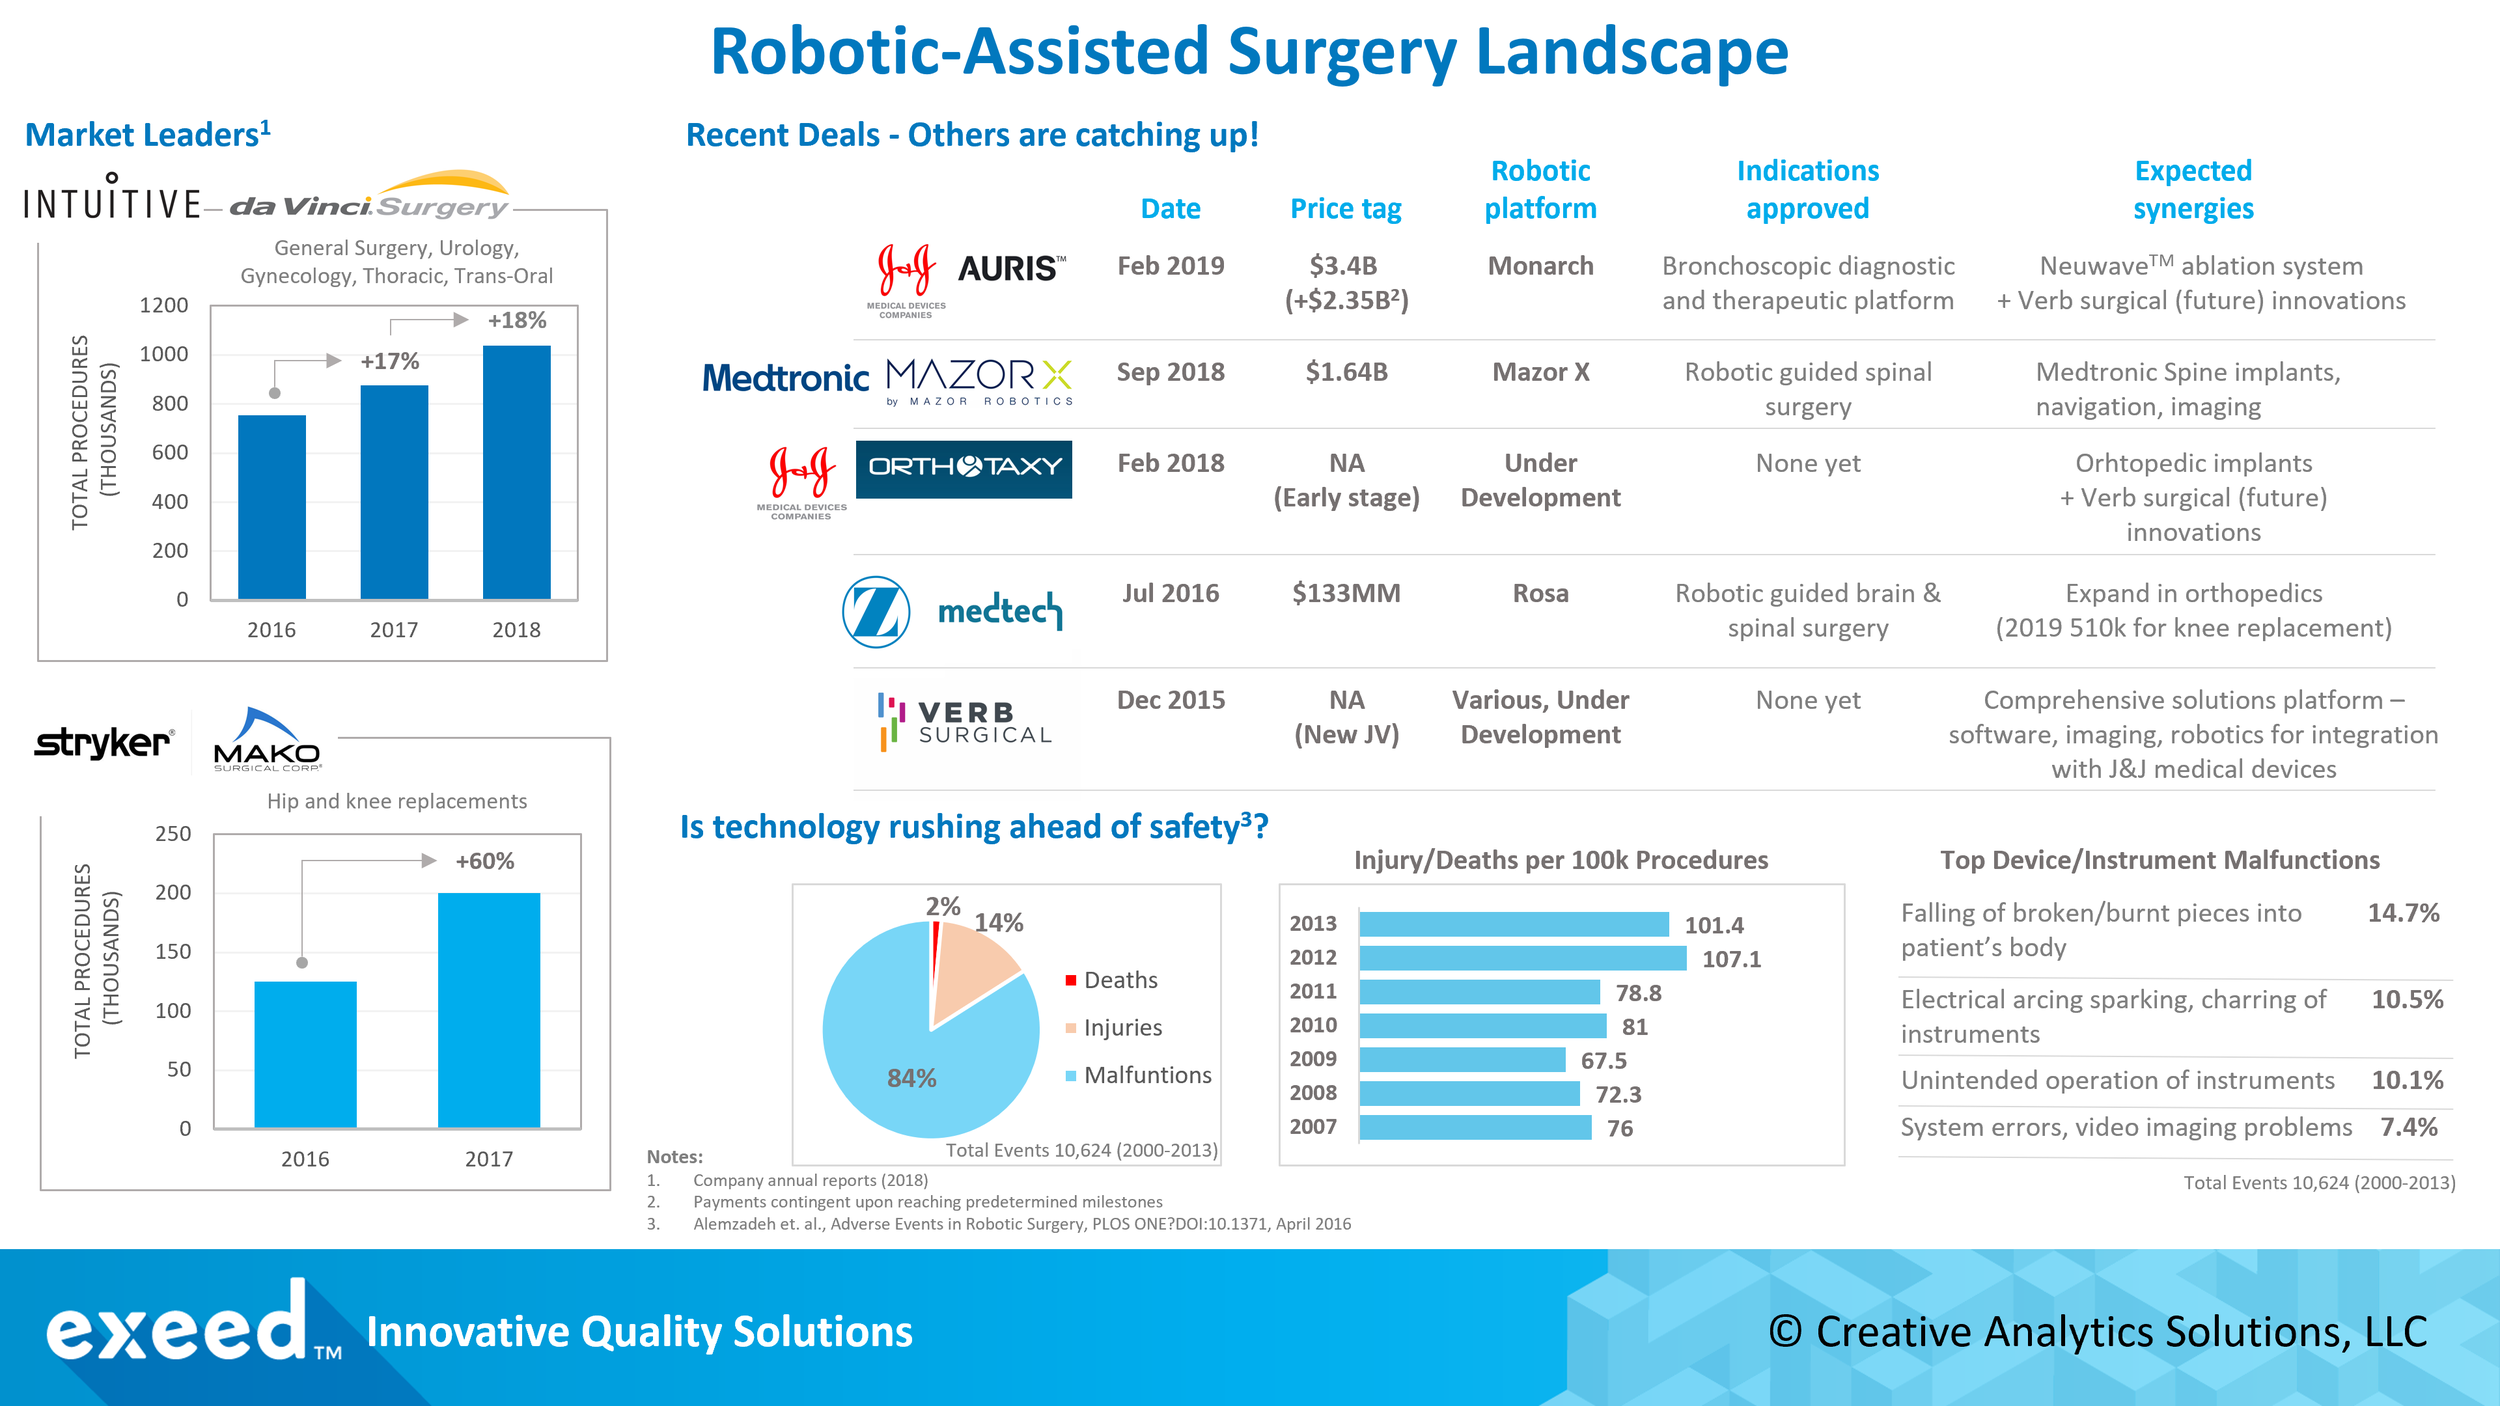 Robotic-Assisted Surgery Landscape